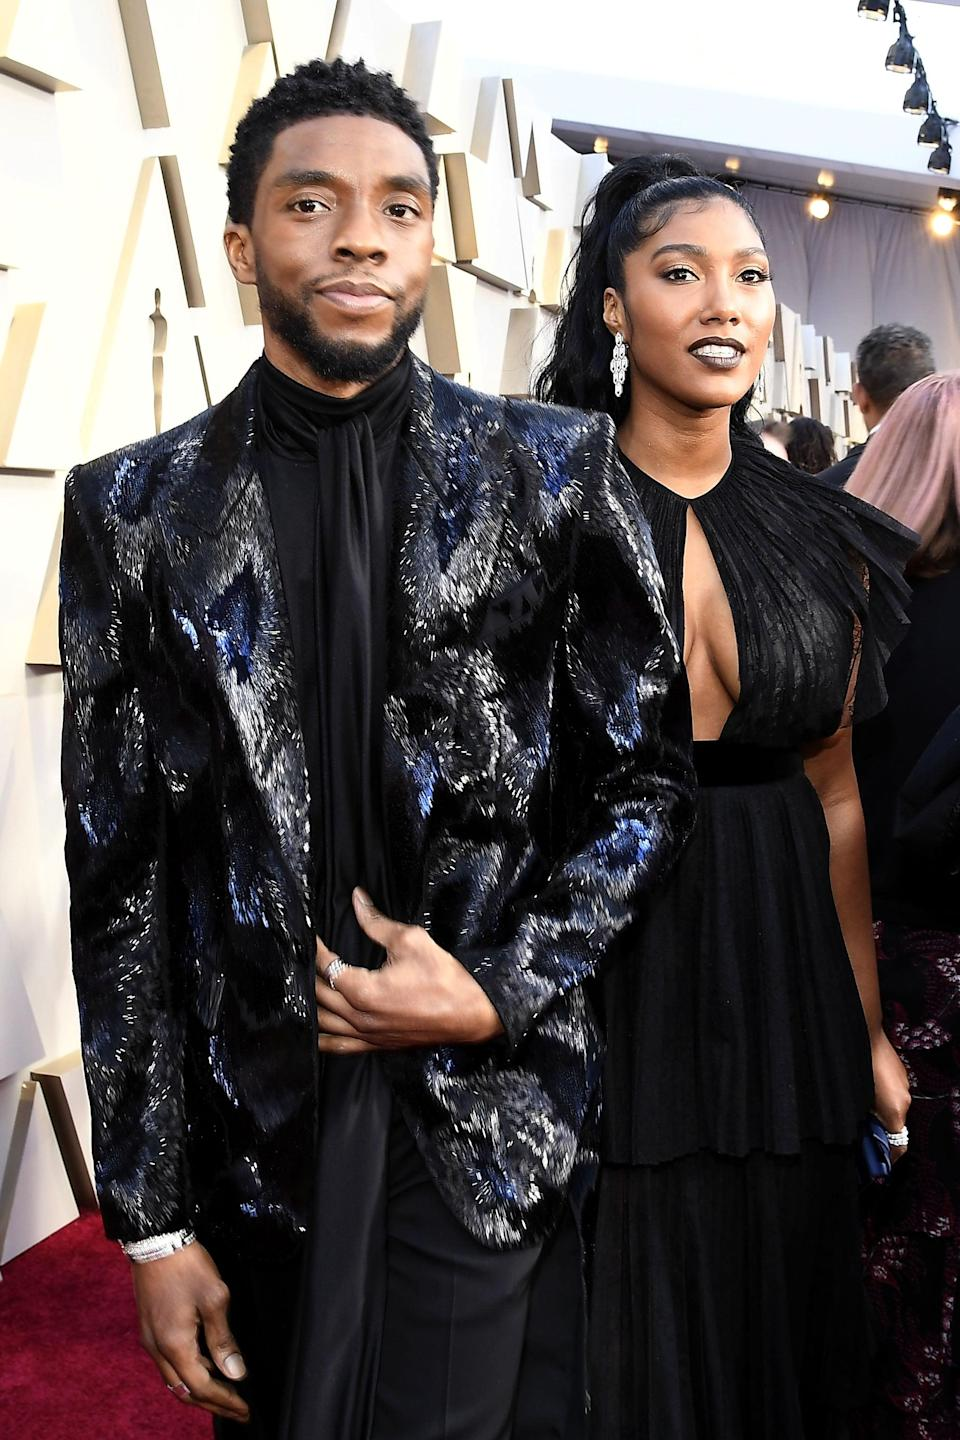 HOLLYWOOD, CALIFORNIA - FEBRUARY 24: (L-R) Chadwick Boseman and Taylor Simone Ledward attend the 91st Annual Academy Awards at Hollywood and Highland on February 24, 2019 in Hollywood, California. (Photo by Kevork Djansezian/Getty Images)